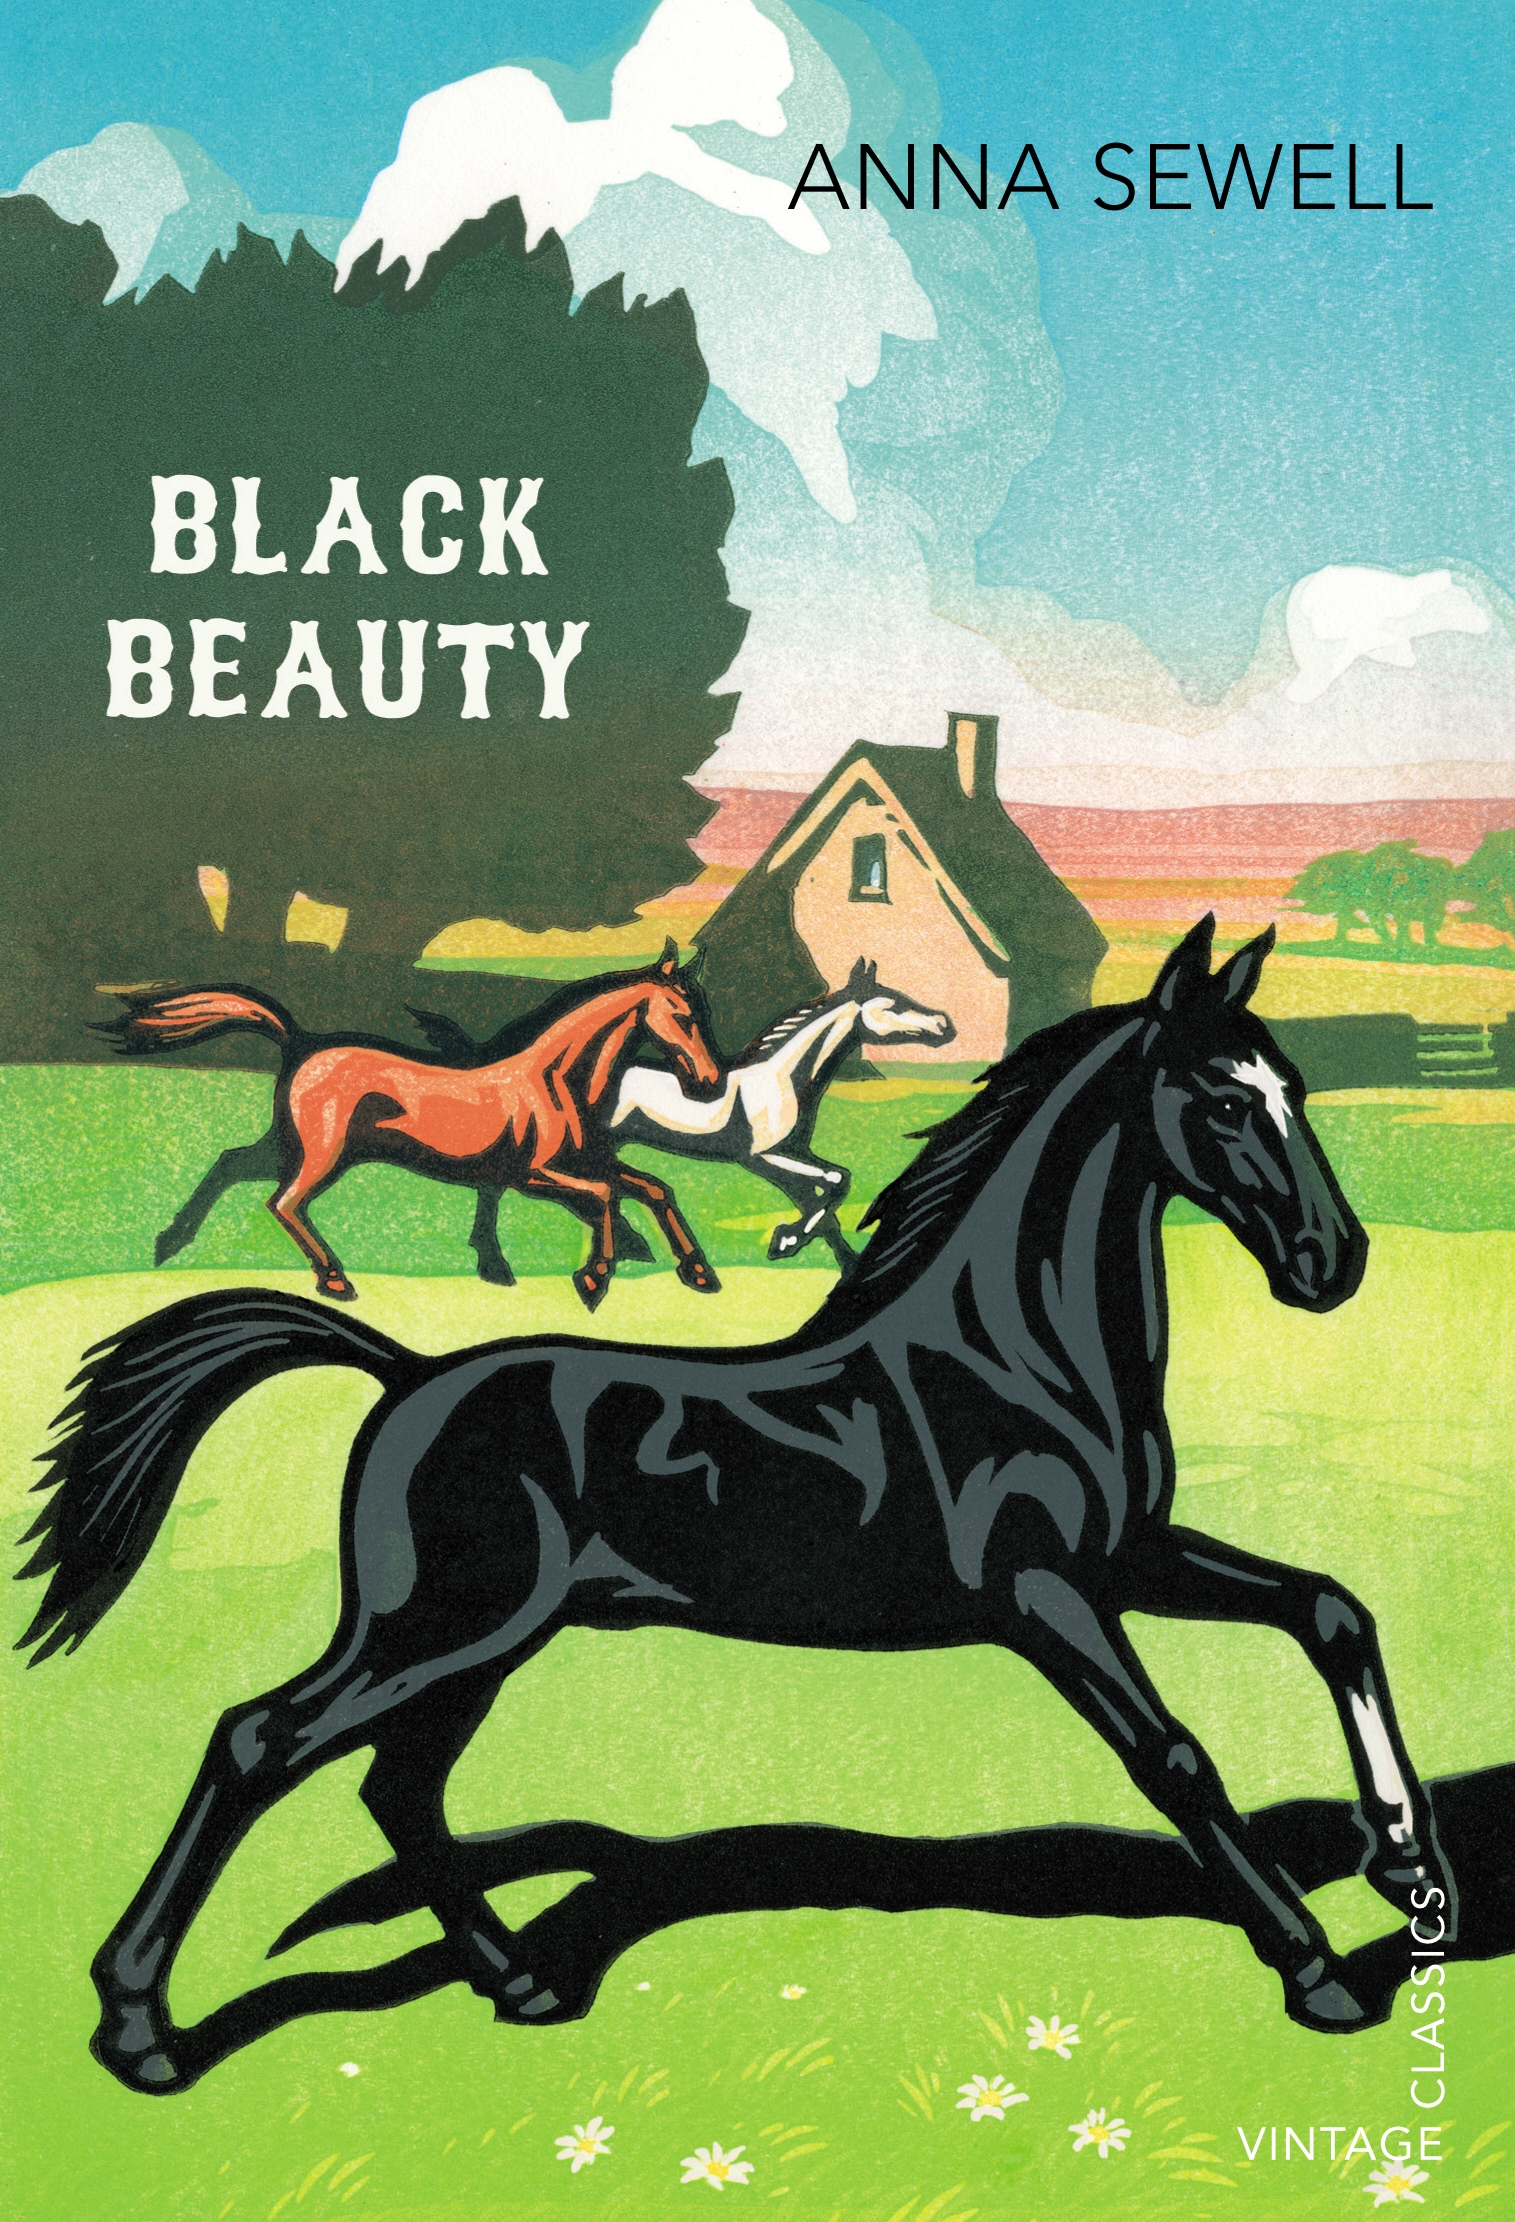 Black Beauty Book Cover : Black beauty by anna sewell penguin books australia